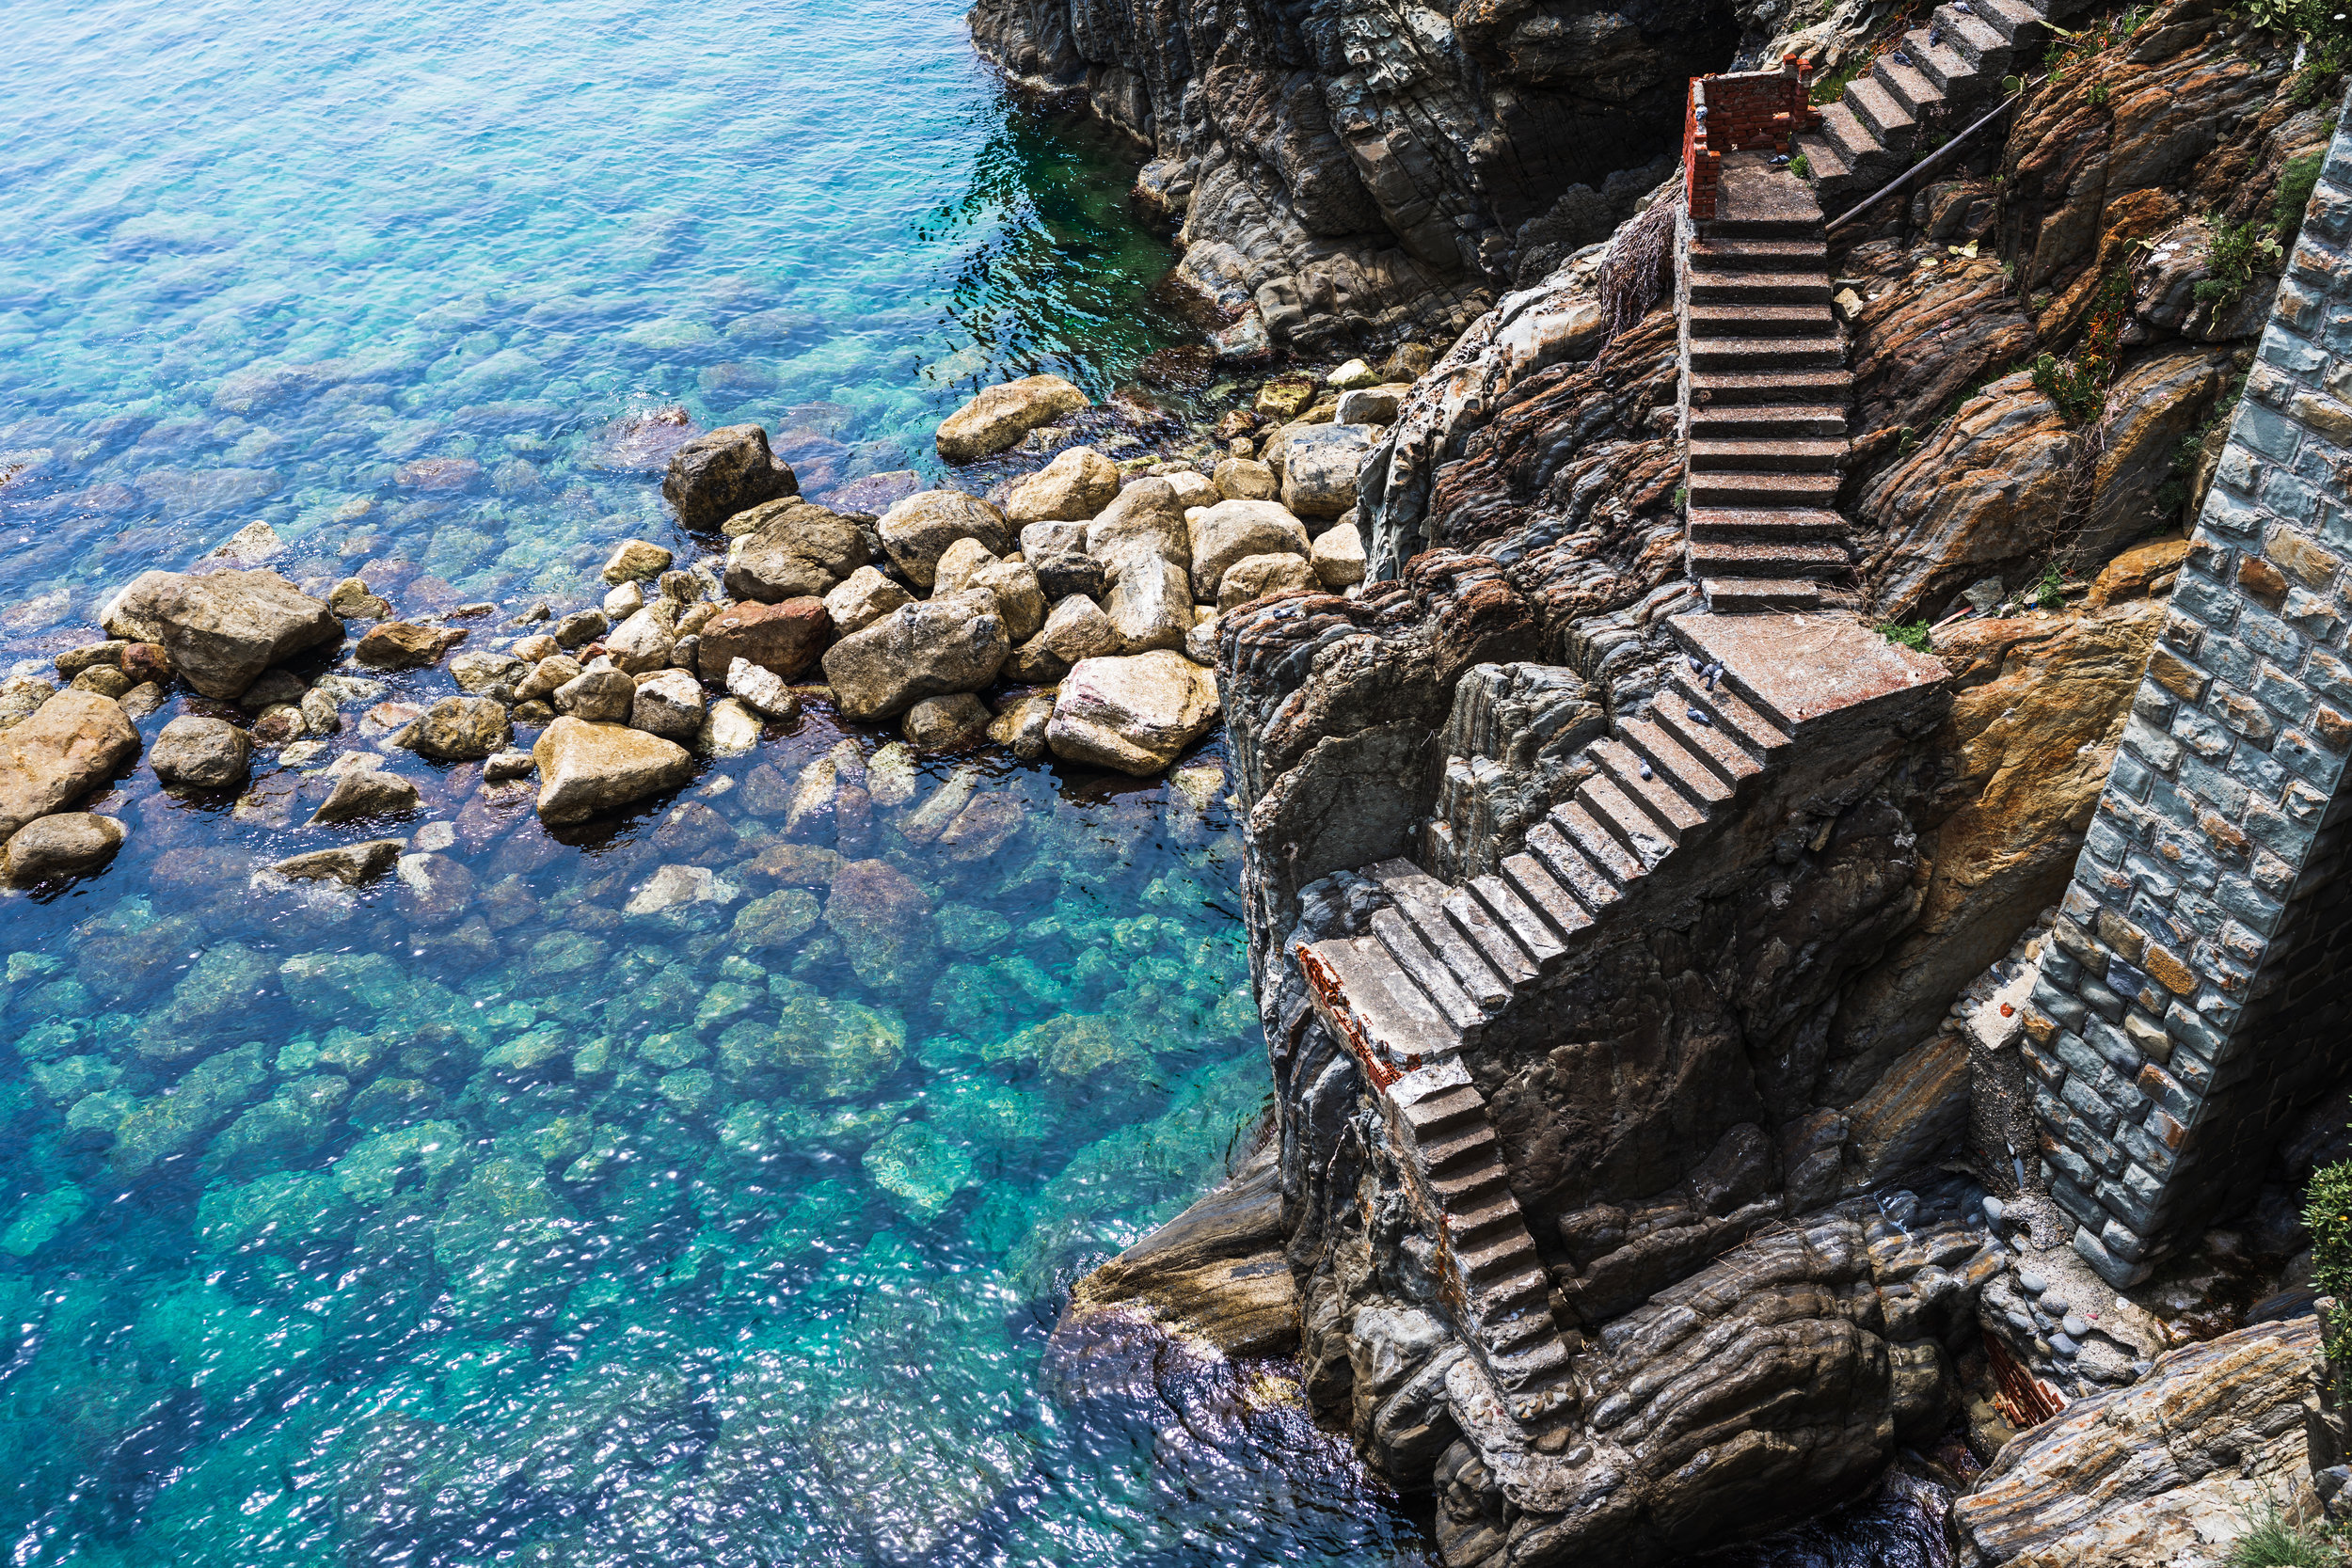 These stairs in Riomaggoire are a metaphor for all the verticality of Cinque Terre - or at least that's what I'm choosing to believe.